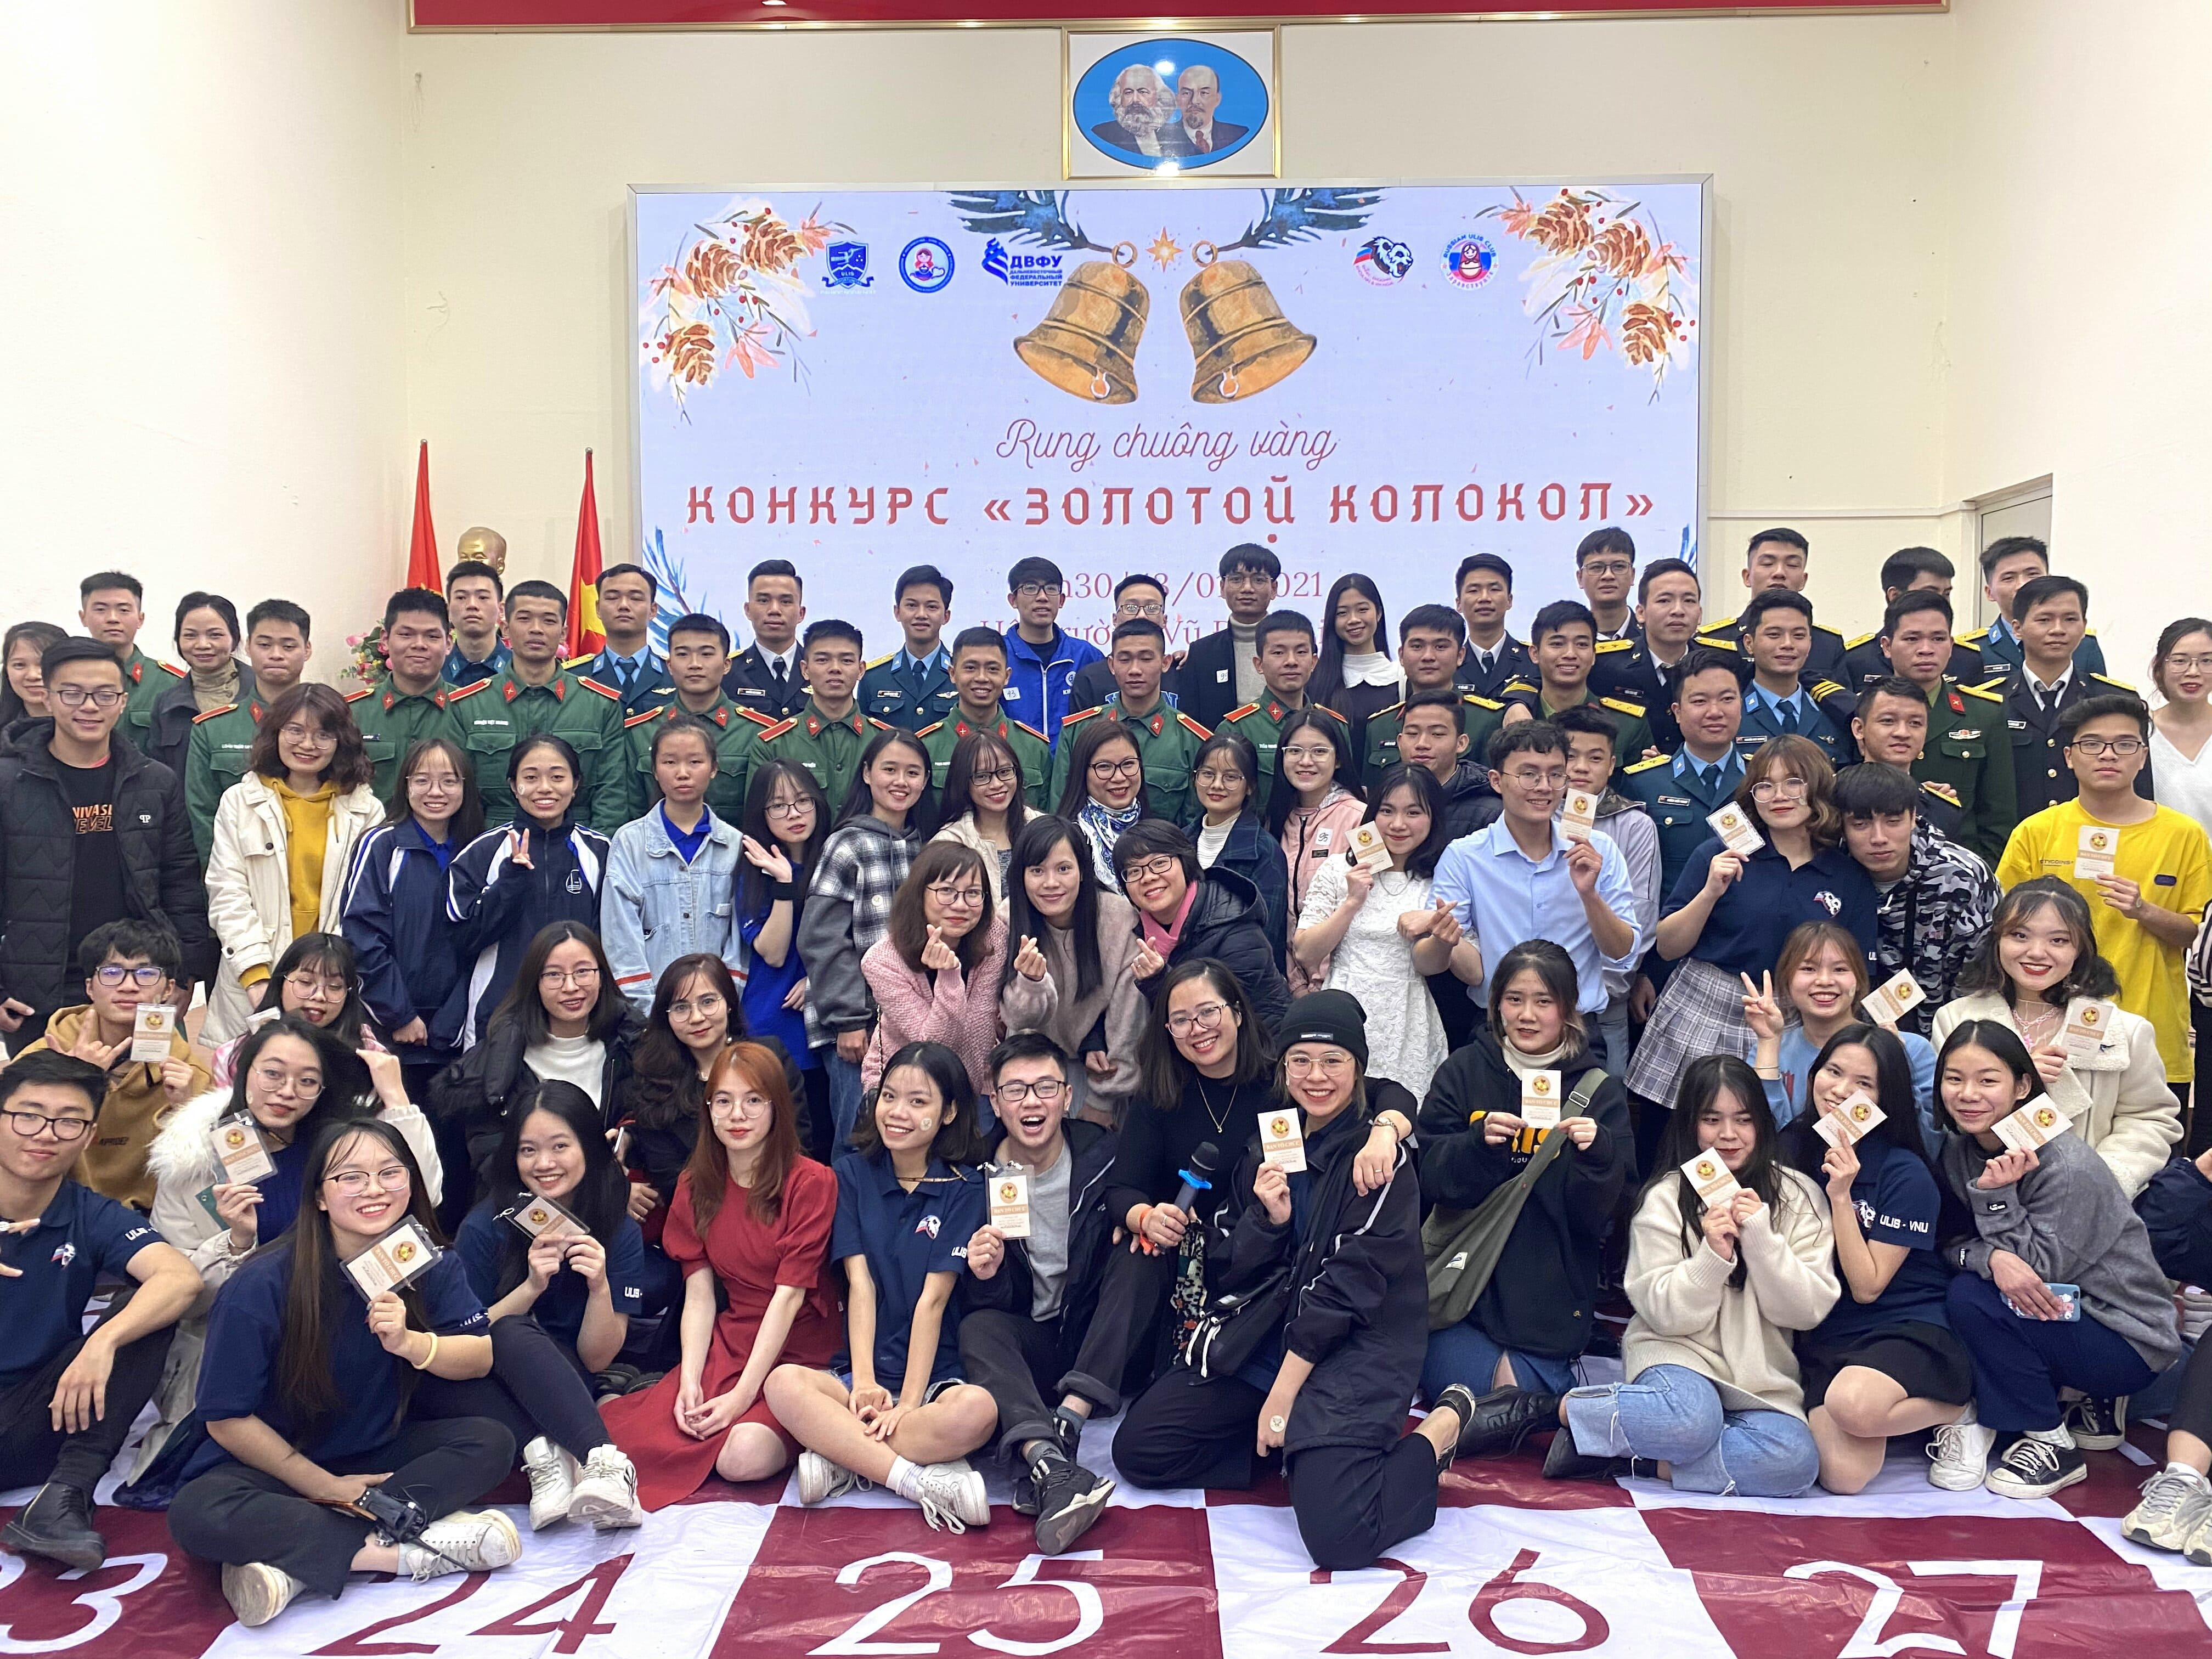 Russian language competition was held in Hanoi